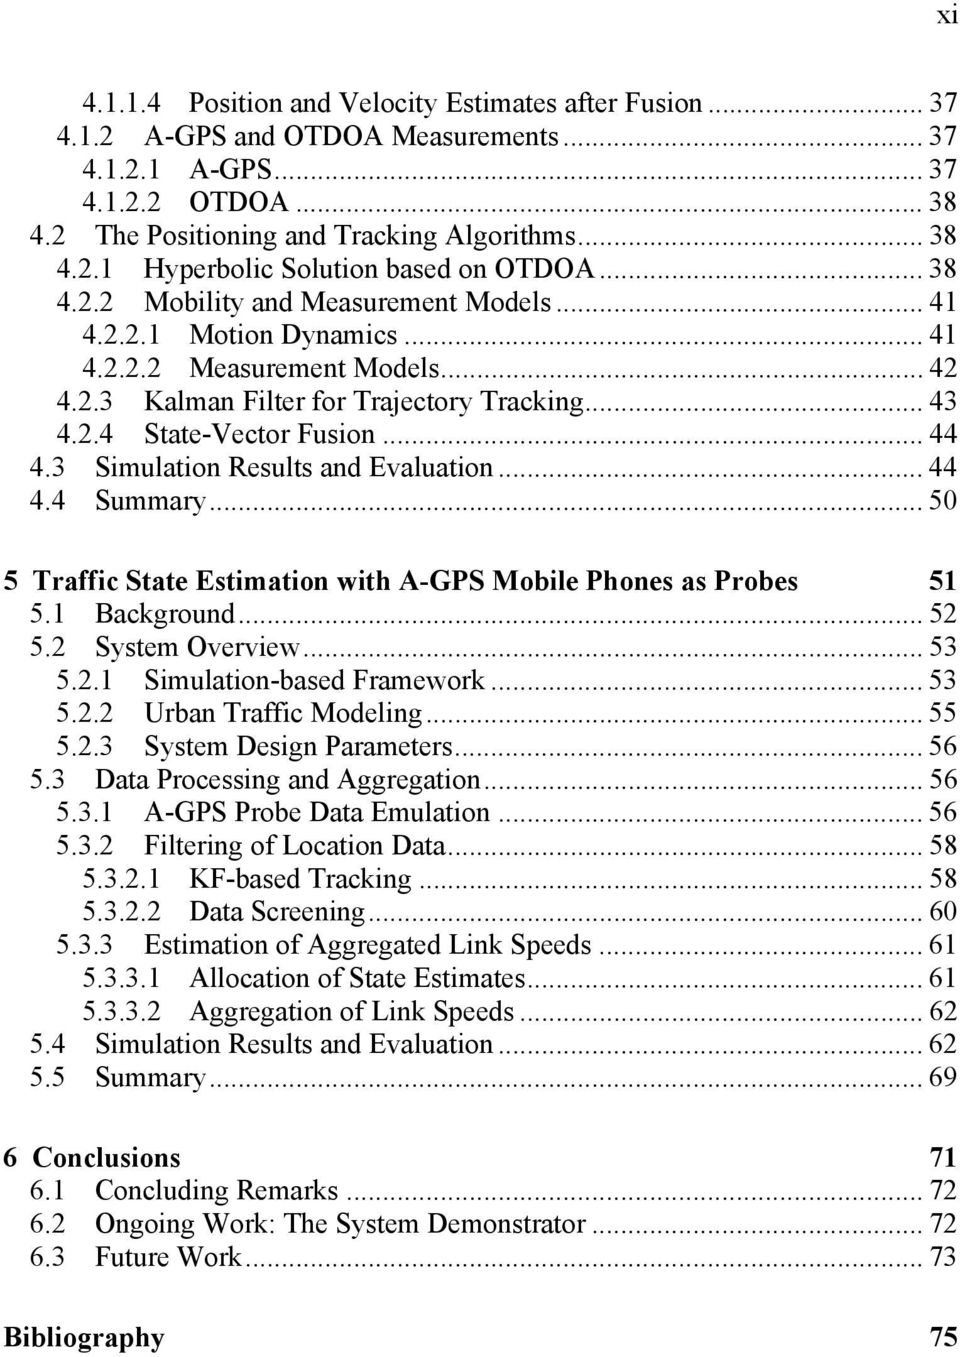 3 Simulation Results and Evaluation... 44 4.4 Summary... 50 5 Traffic State Estimation with A-GPS Mobile Phones as Probes 51 5.1 Background... 52 5.2 System Overview... 53 5.2.1 Simulation-based Framework.